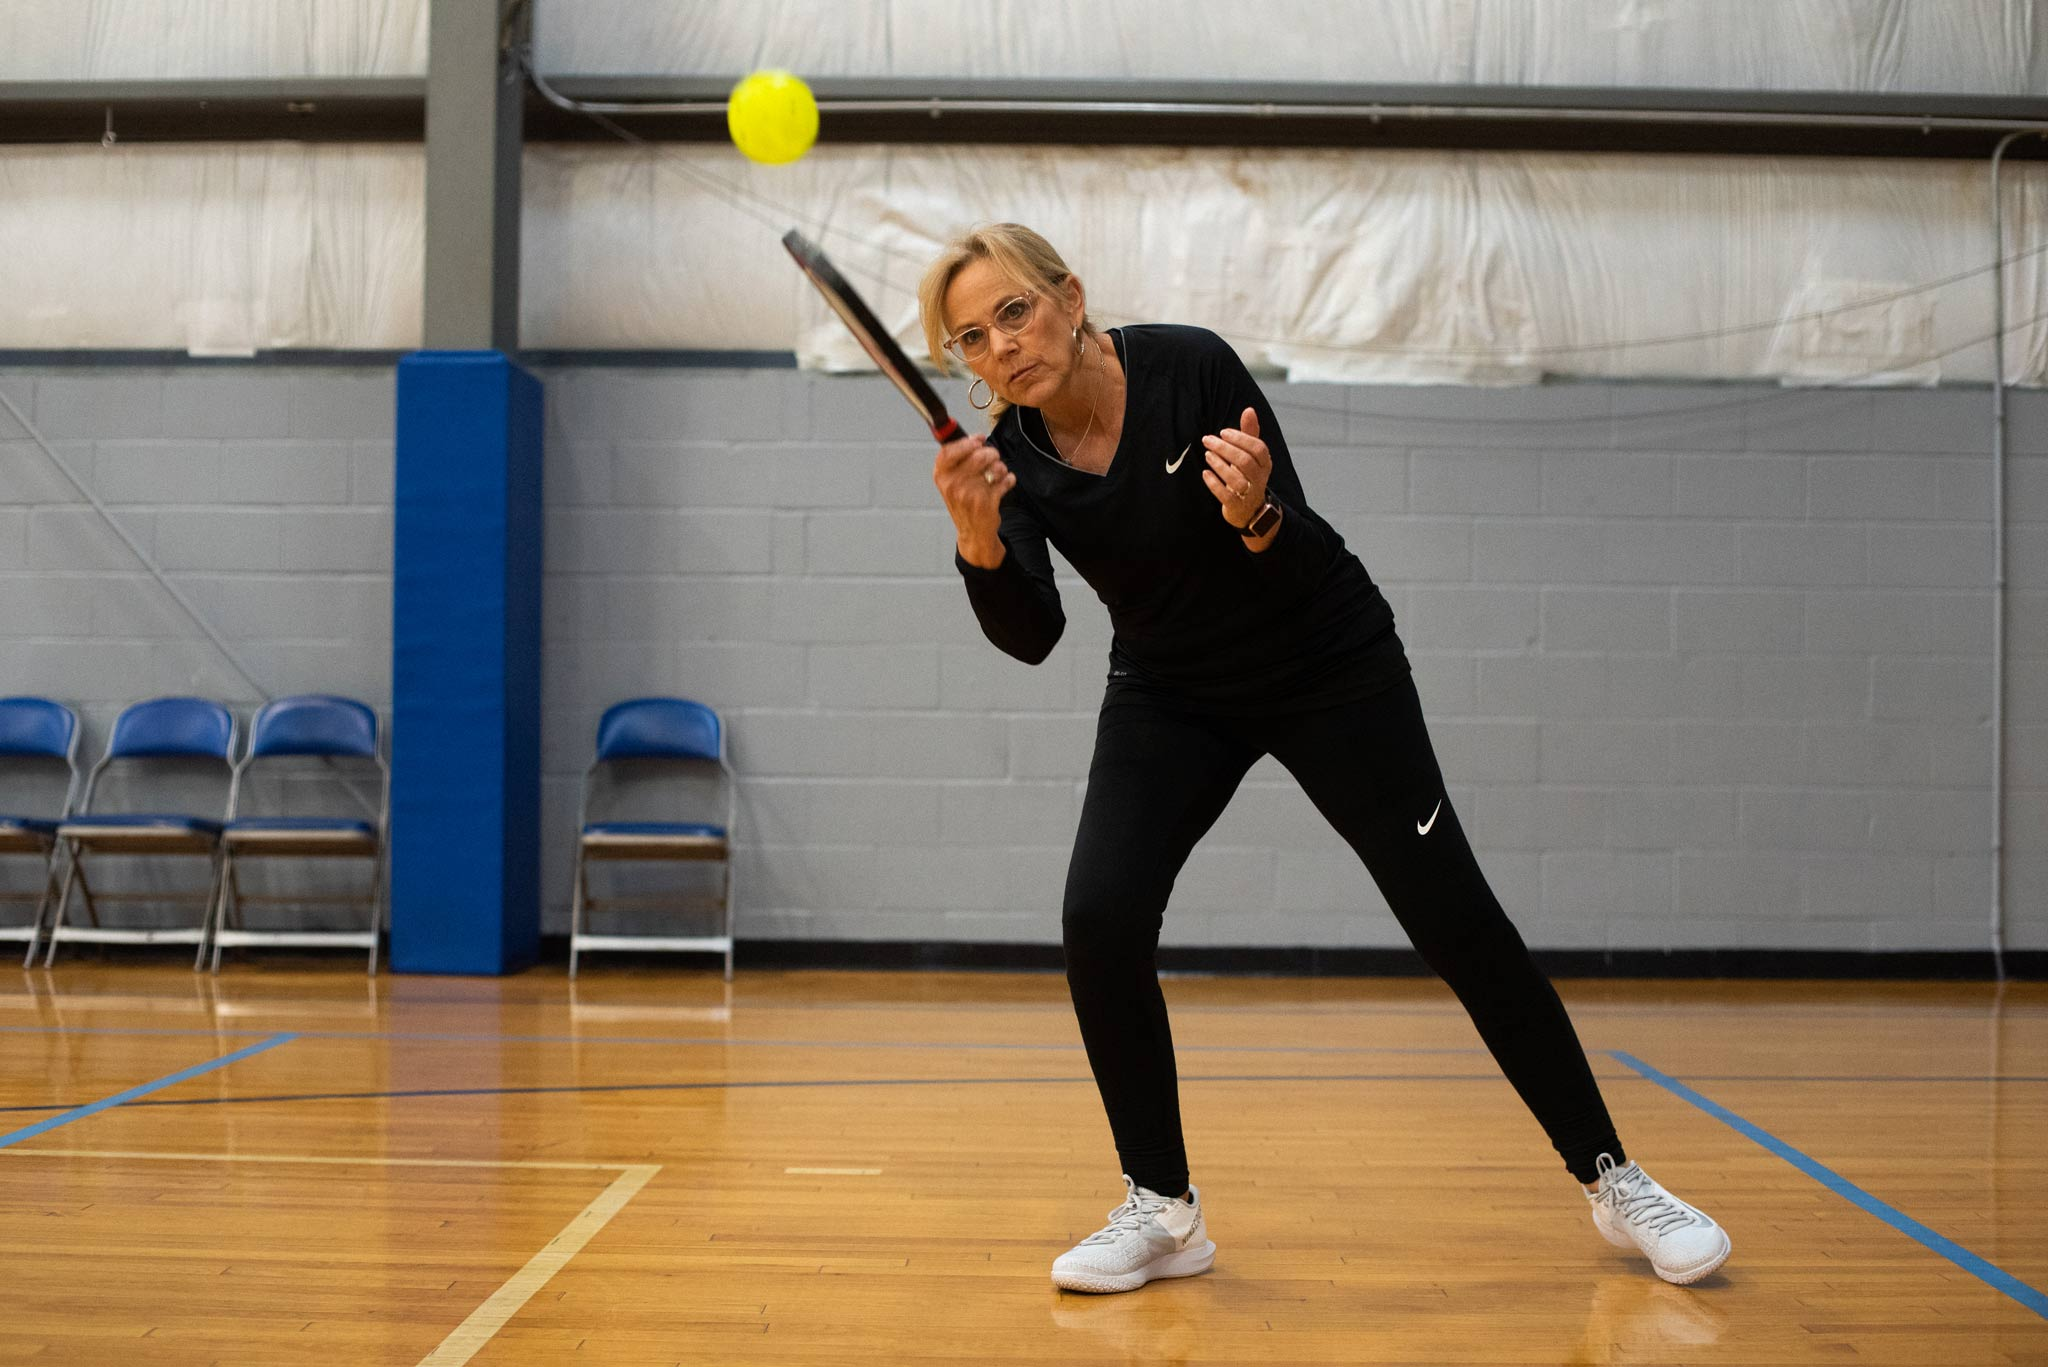 Donna leans into a swing to hit the ball back during a pickleball game.